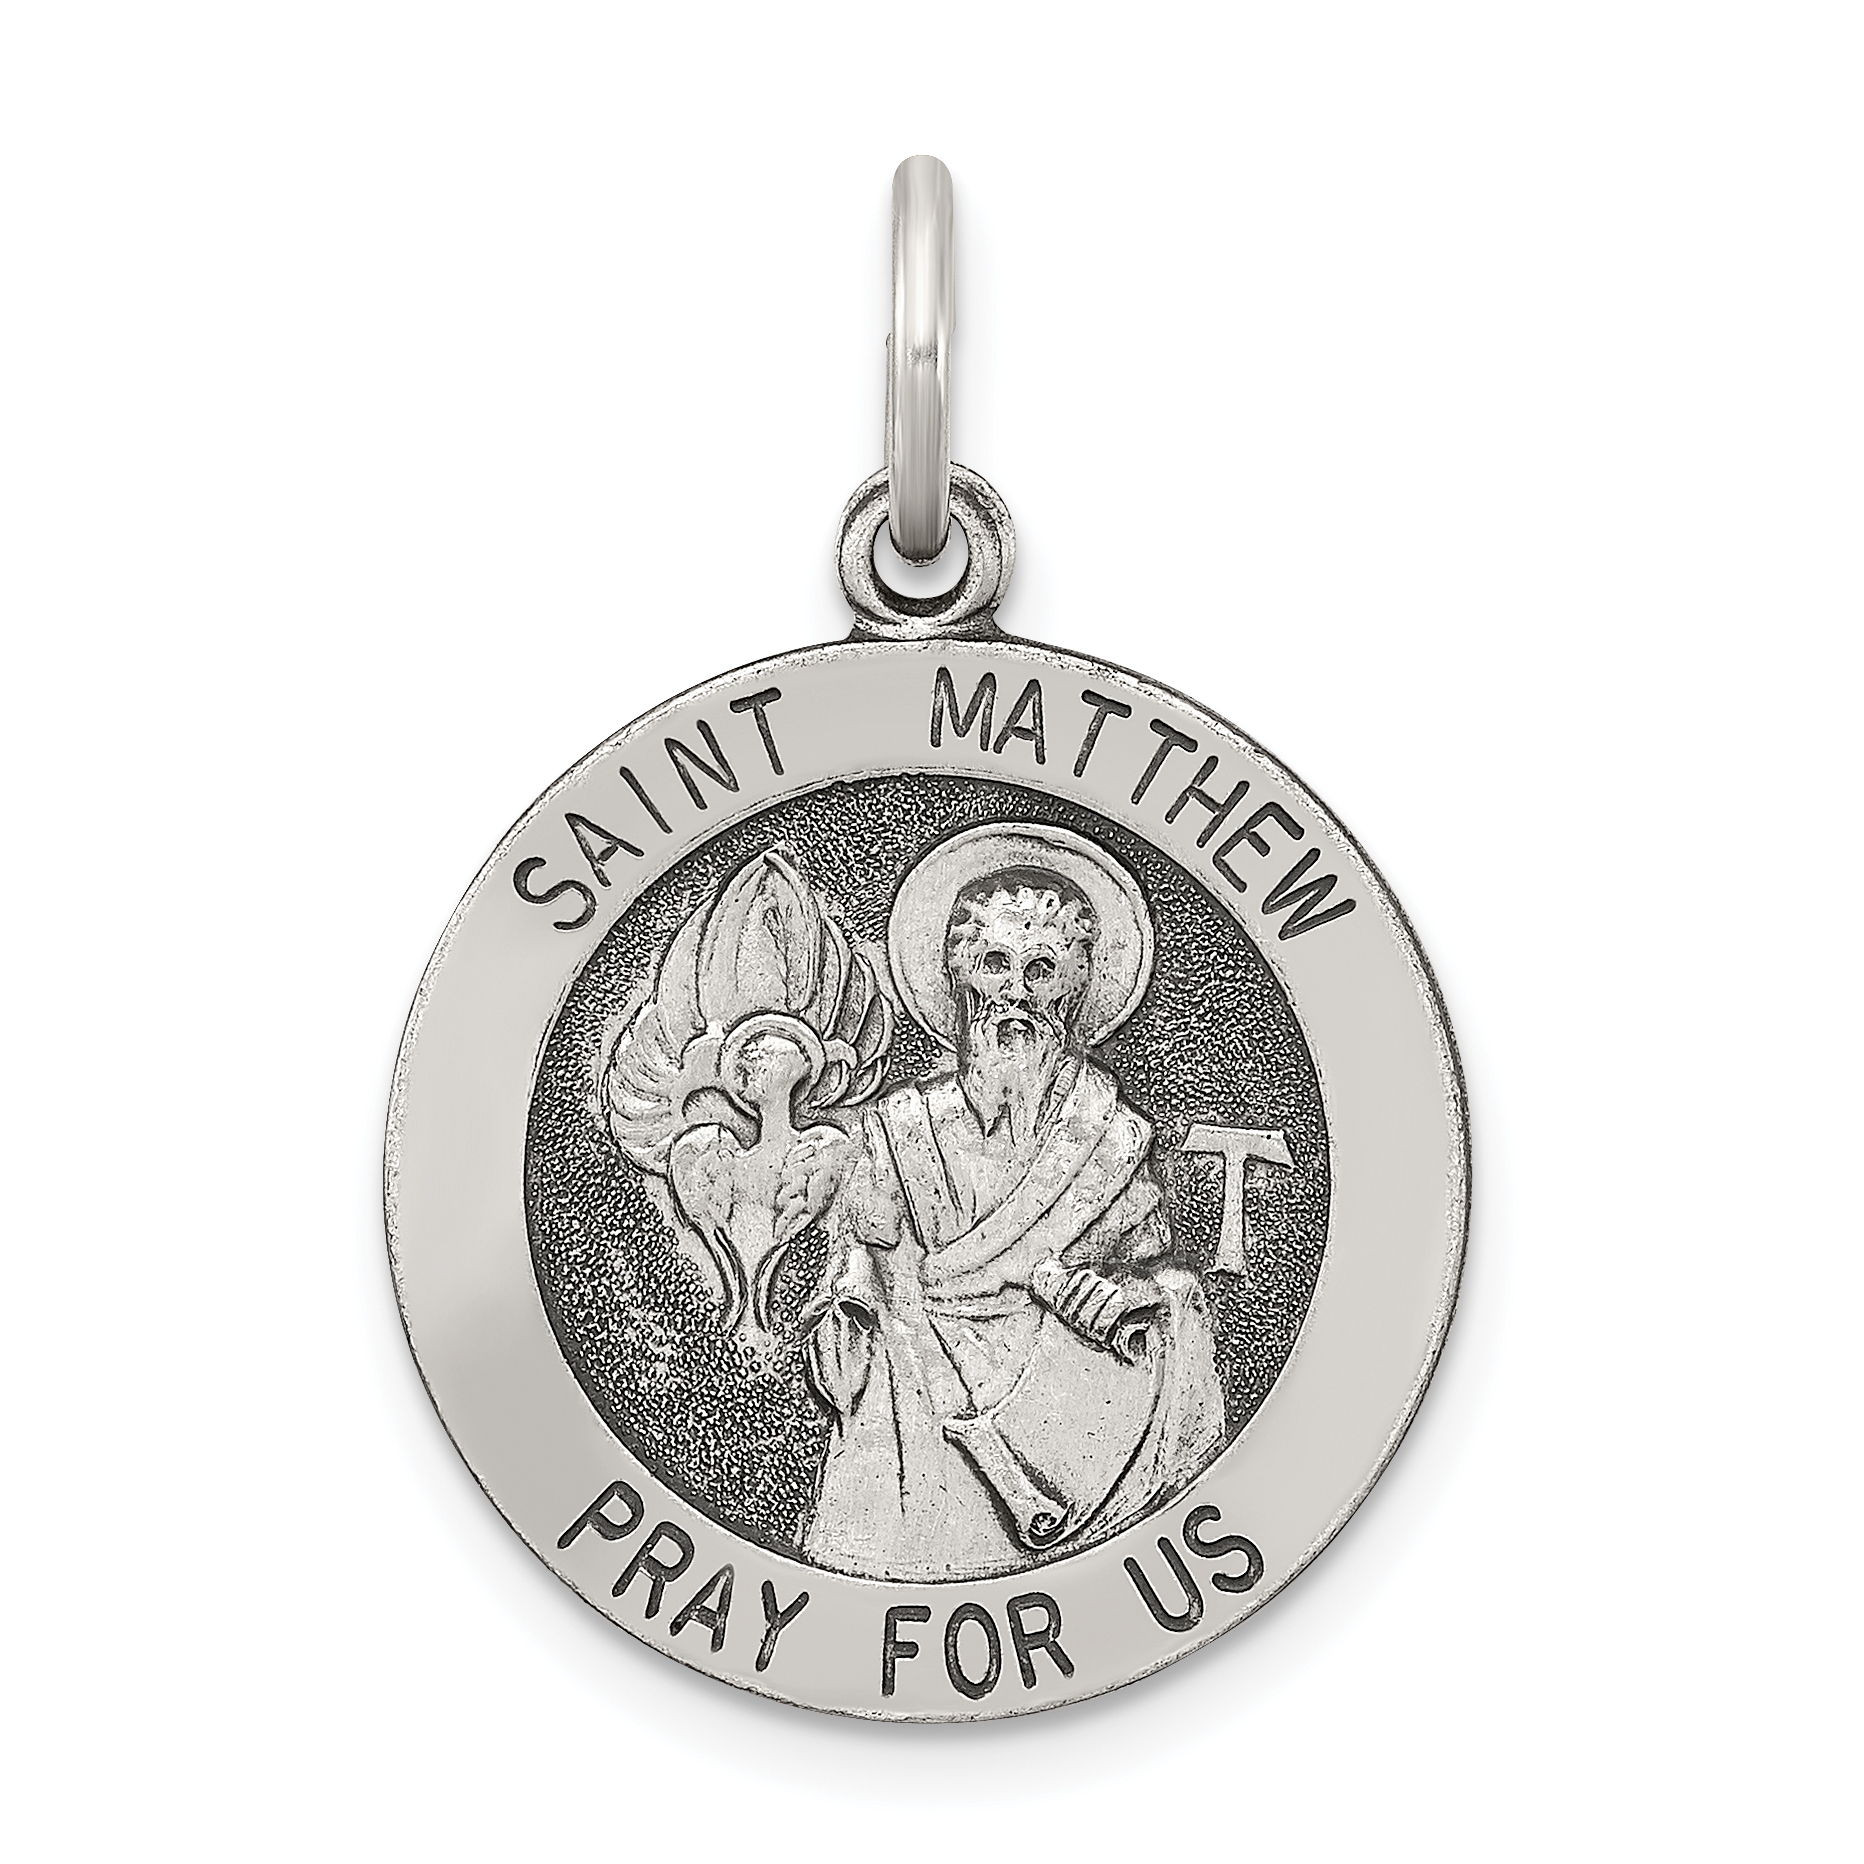 925 Sterling Silver Saint Matthew Medal Pendant Charm Necklace Religious Patron St Fine Jewelry Gifts For Women For Her - image 4 de 4